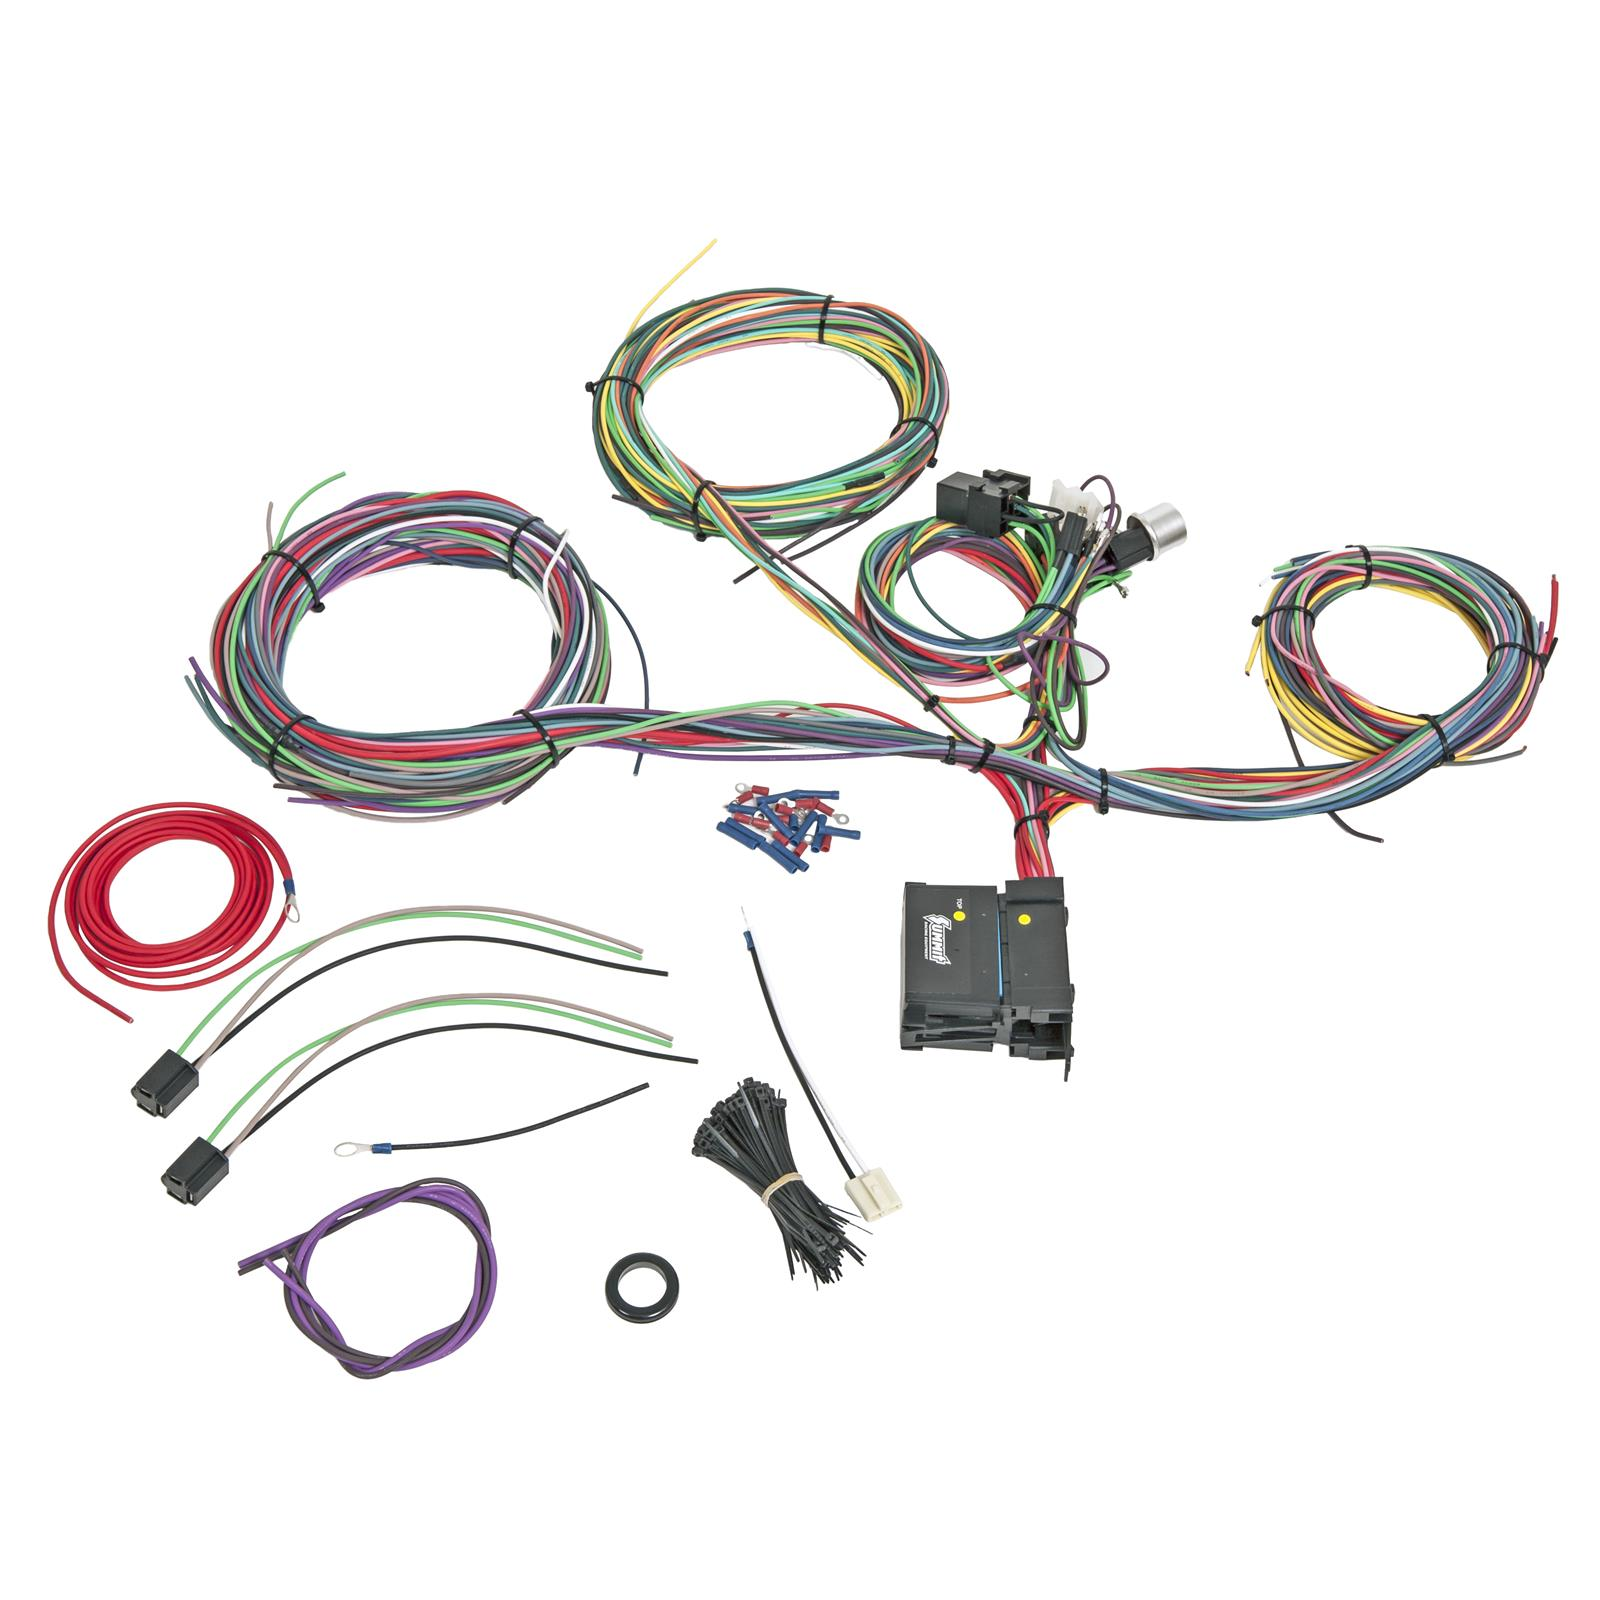 sum 890021_xl summit racing� 18 circuit universal wiring harnesses sum 890021 packard wiring harness at mifinder.co